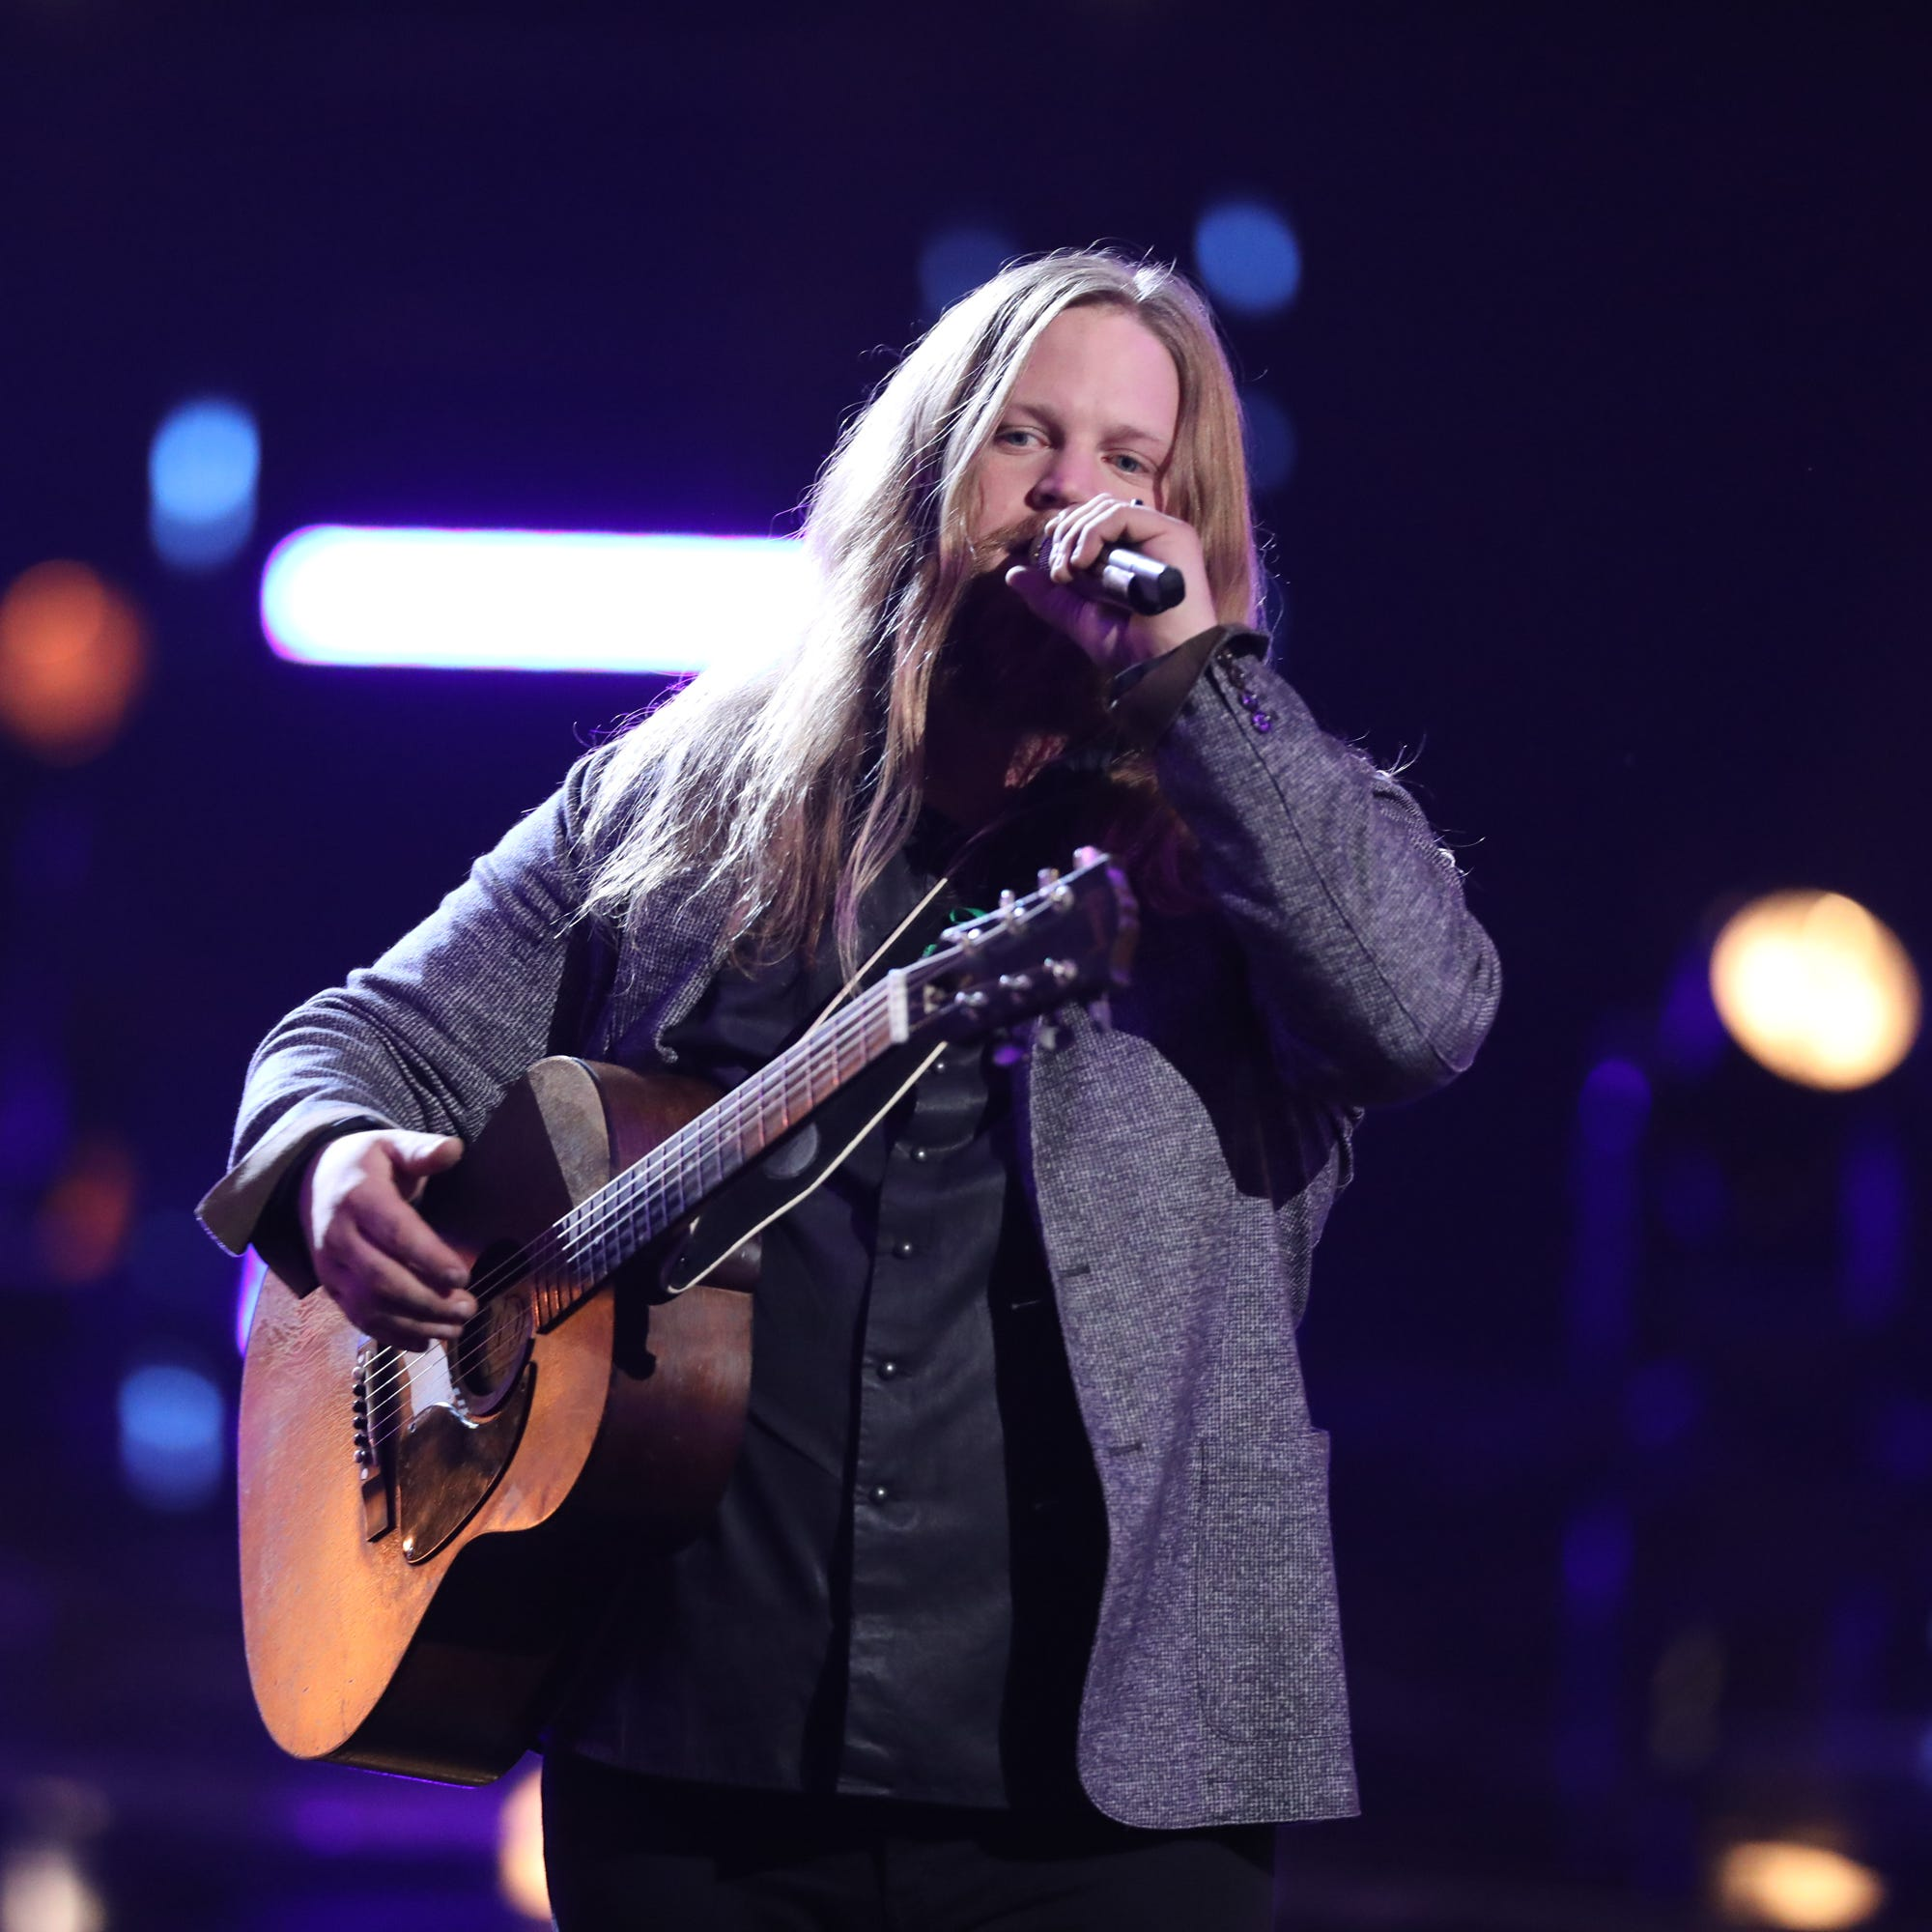 Wisconsin's Chris Kroeze advances to the top 13 on 'The Voice'